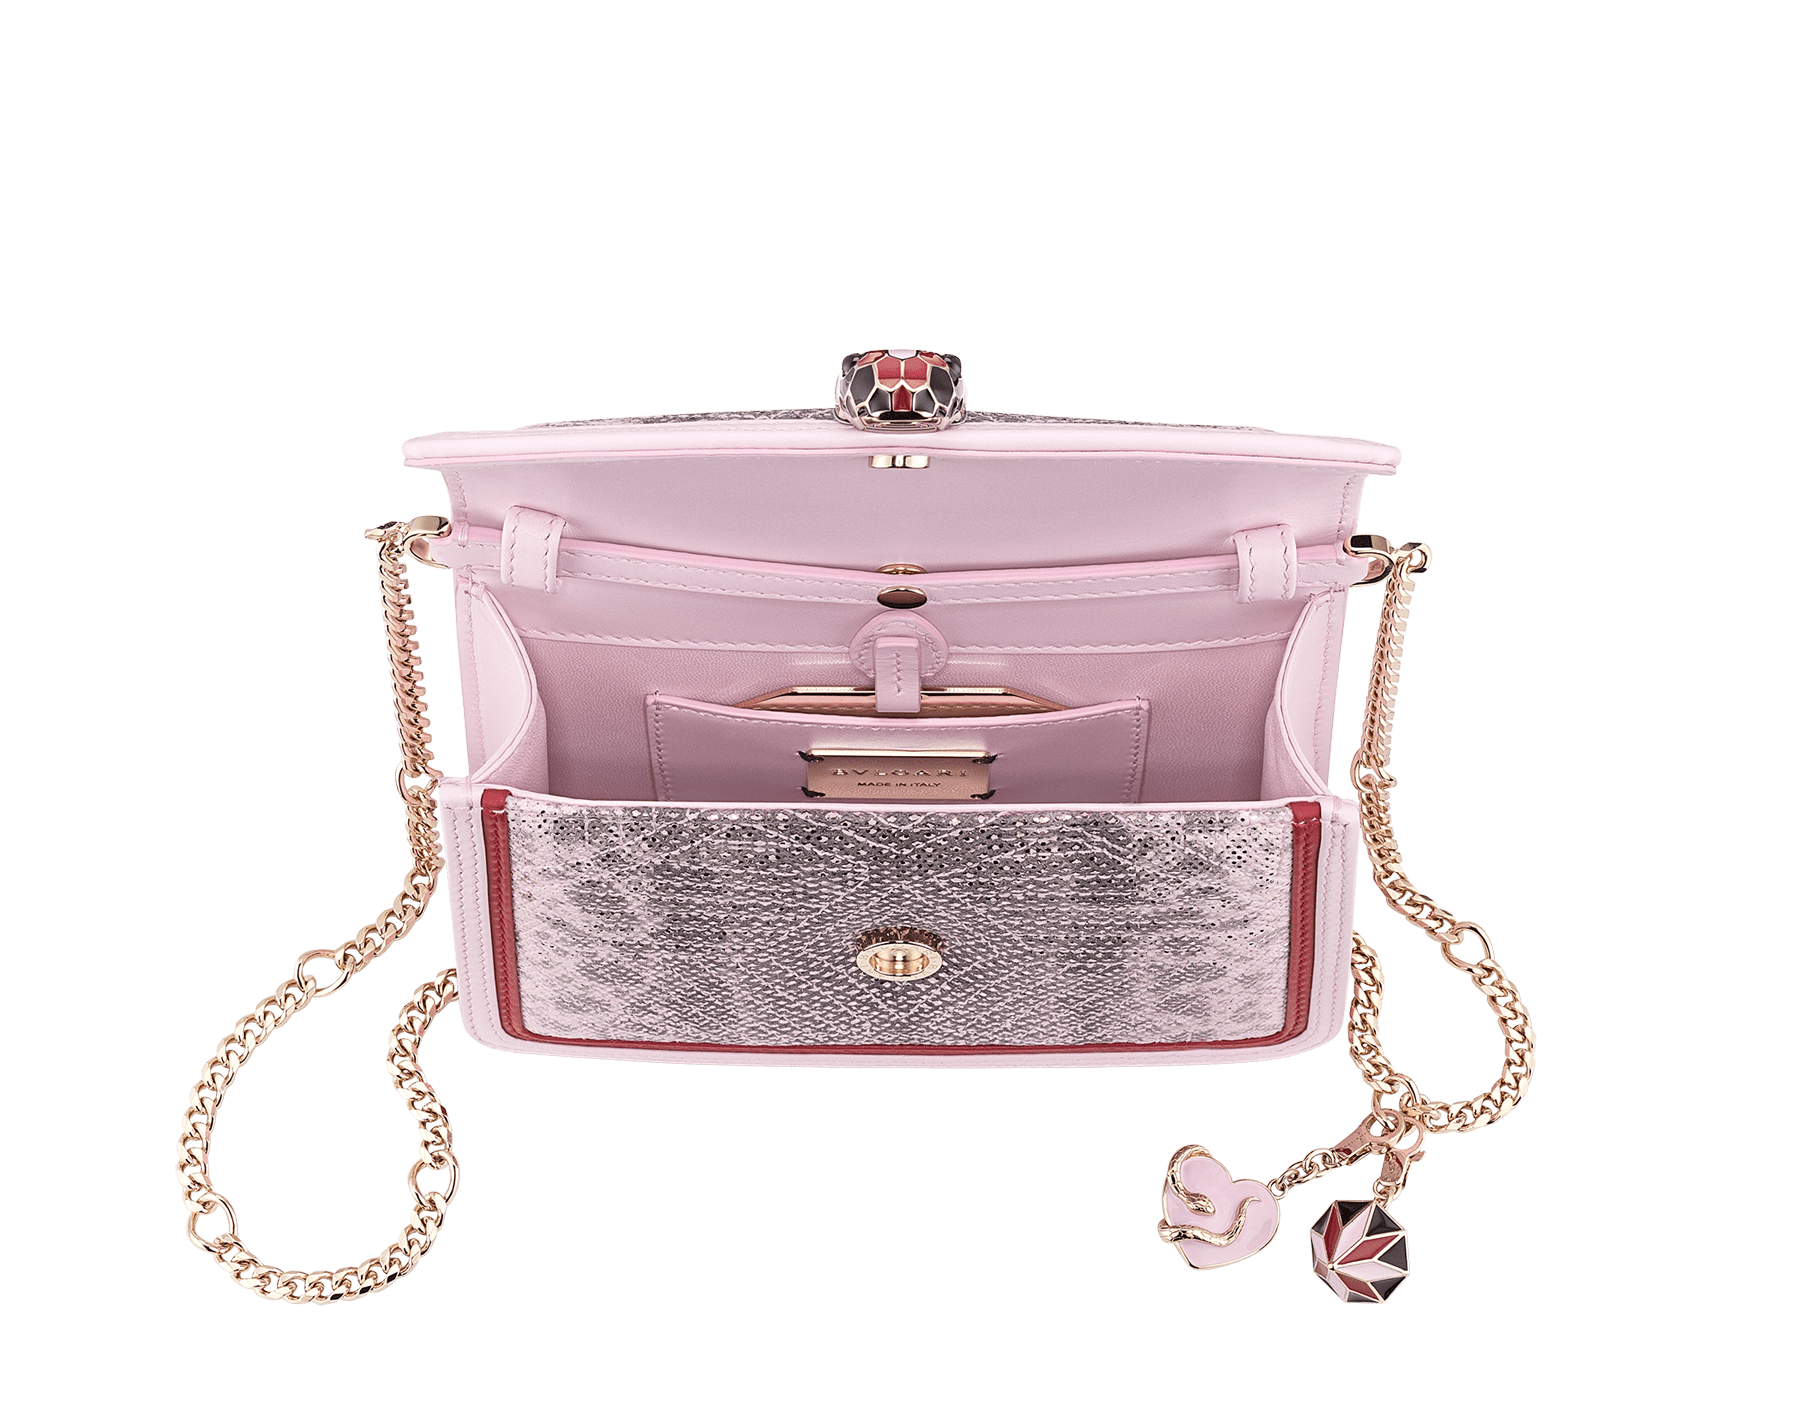 Serpenti Diamond Blast crossbody micro bag in rosa di Francia quilted metallic karung skin body and rosa di Francia and carmine jasper calf leather frames. Snakehead closure in light gold plated brass with black, carmine jasper and rosa di Francia enamel, black onyx eyes, heart-shaped and three-dimensional diamond-shaped detachable charms. 289549 image 4